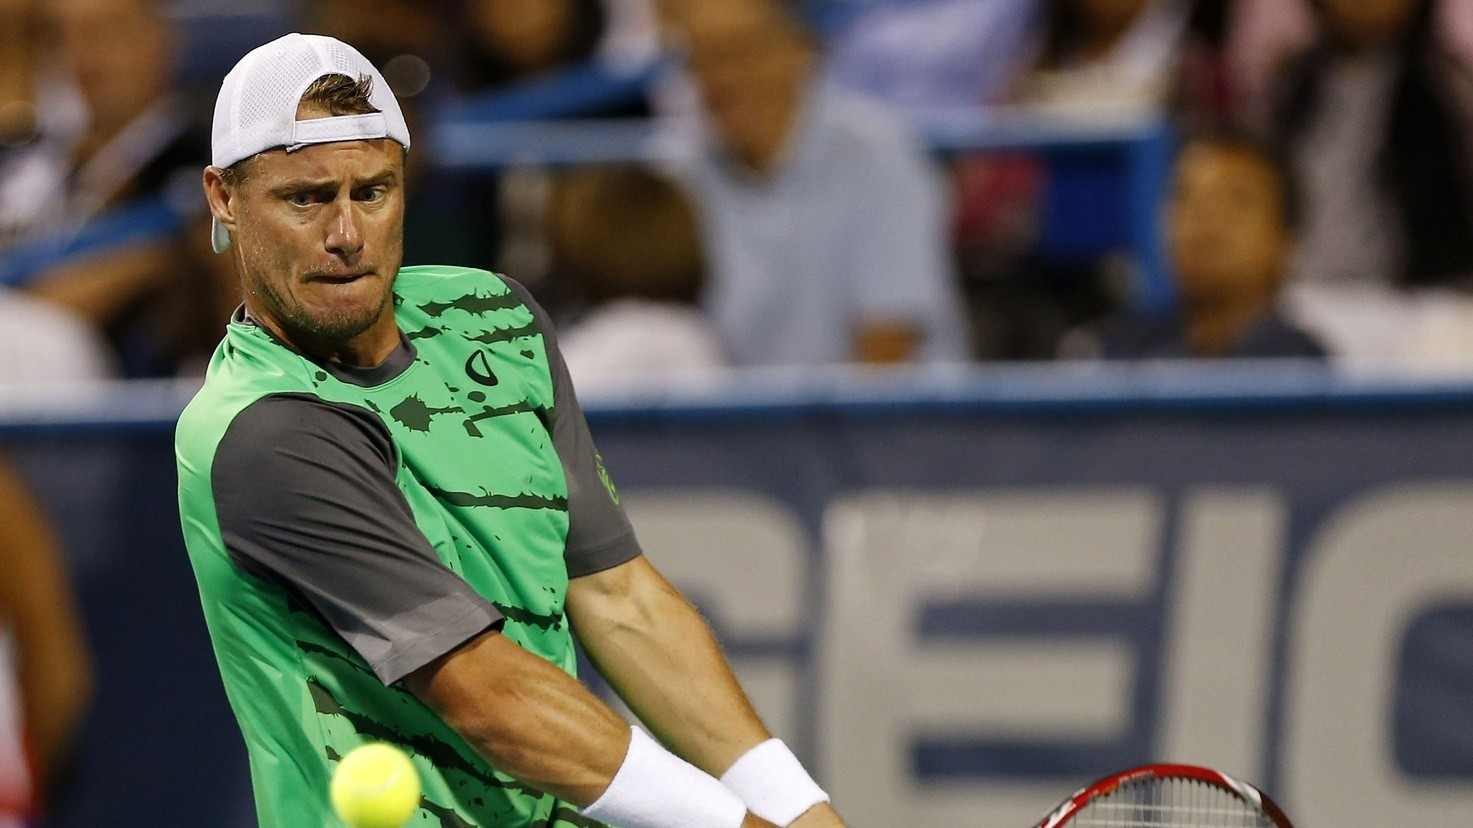 Did Lleyton Hewitt Fix Matches, or Does Betting Data Require More Context?